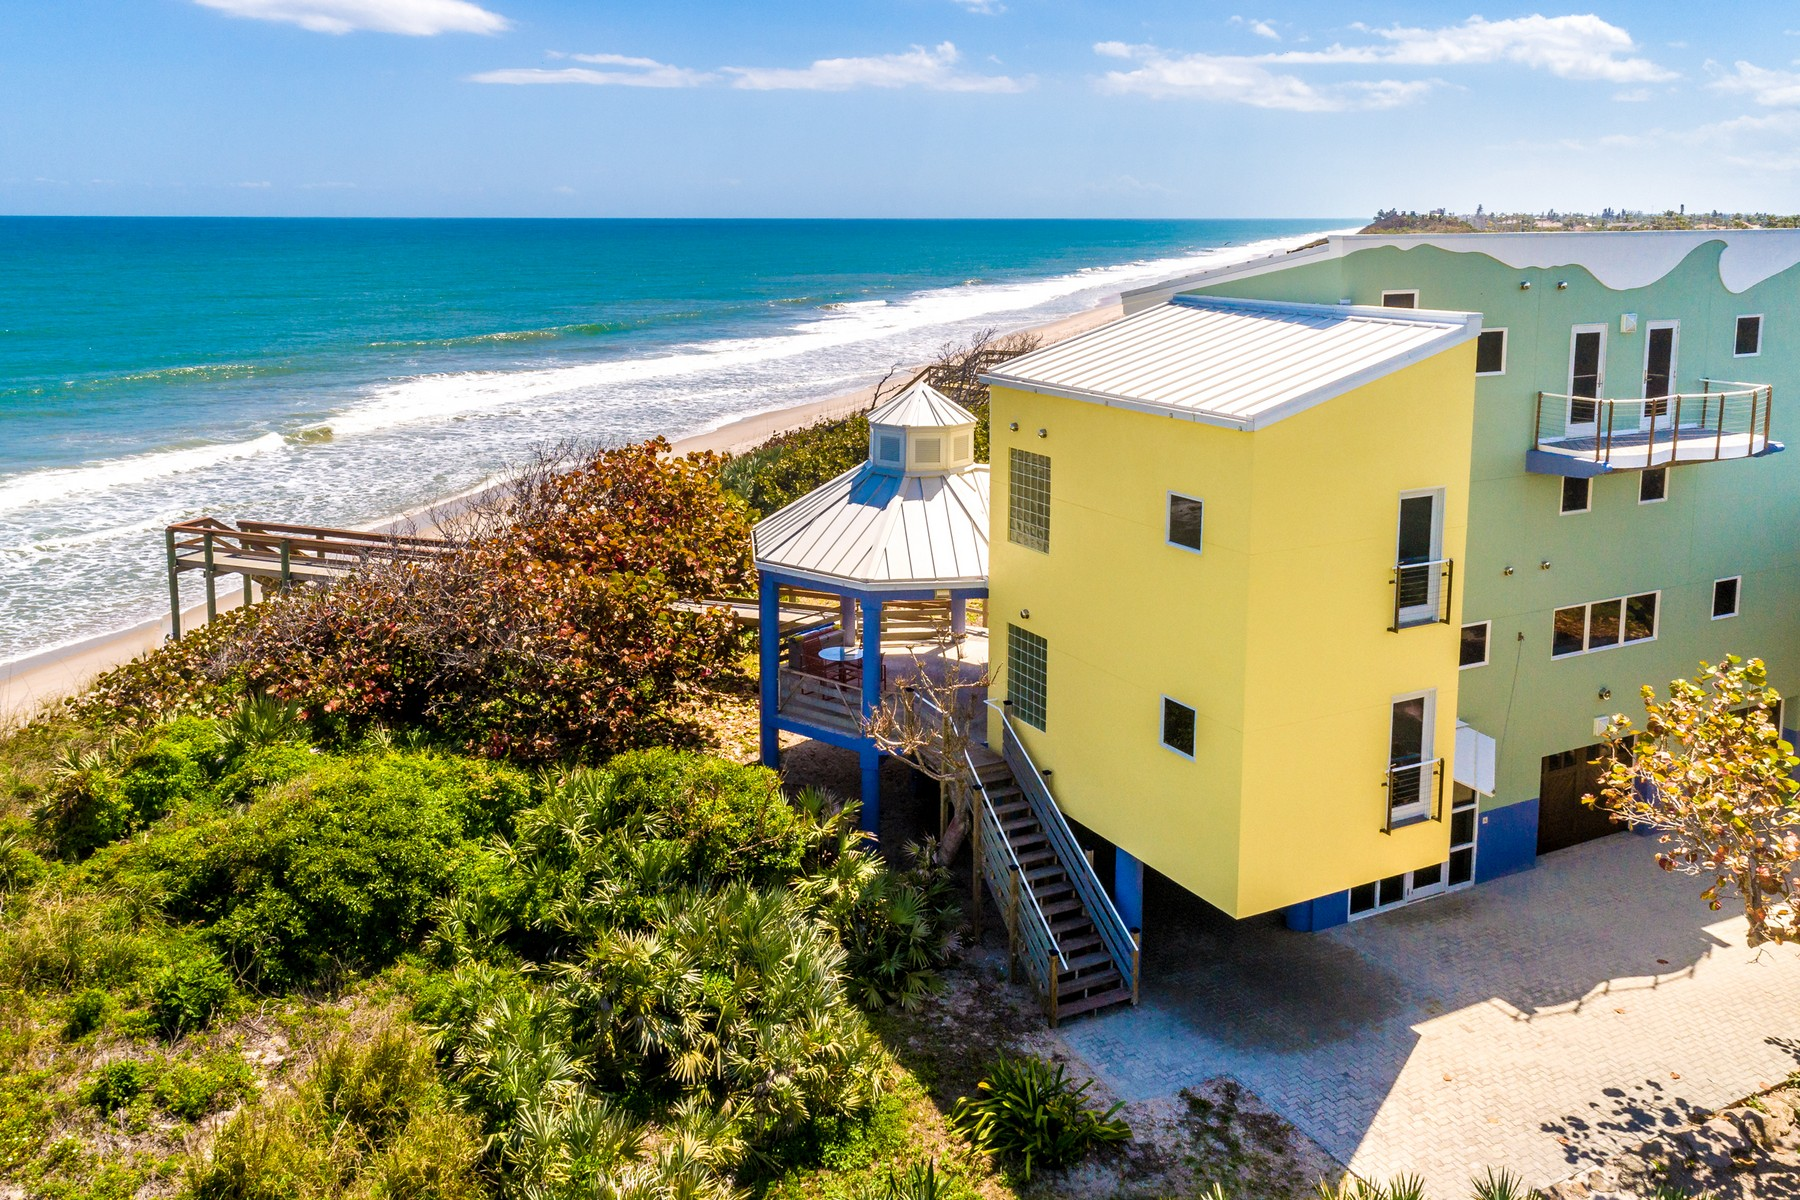 Single Family Homes for Active at Spectacular Oceanfront Home Bordering Nature Preserve. 4515 Highway A1A Melbourne Beach, Florida 32951 United States